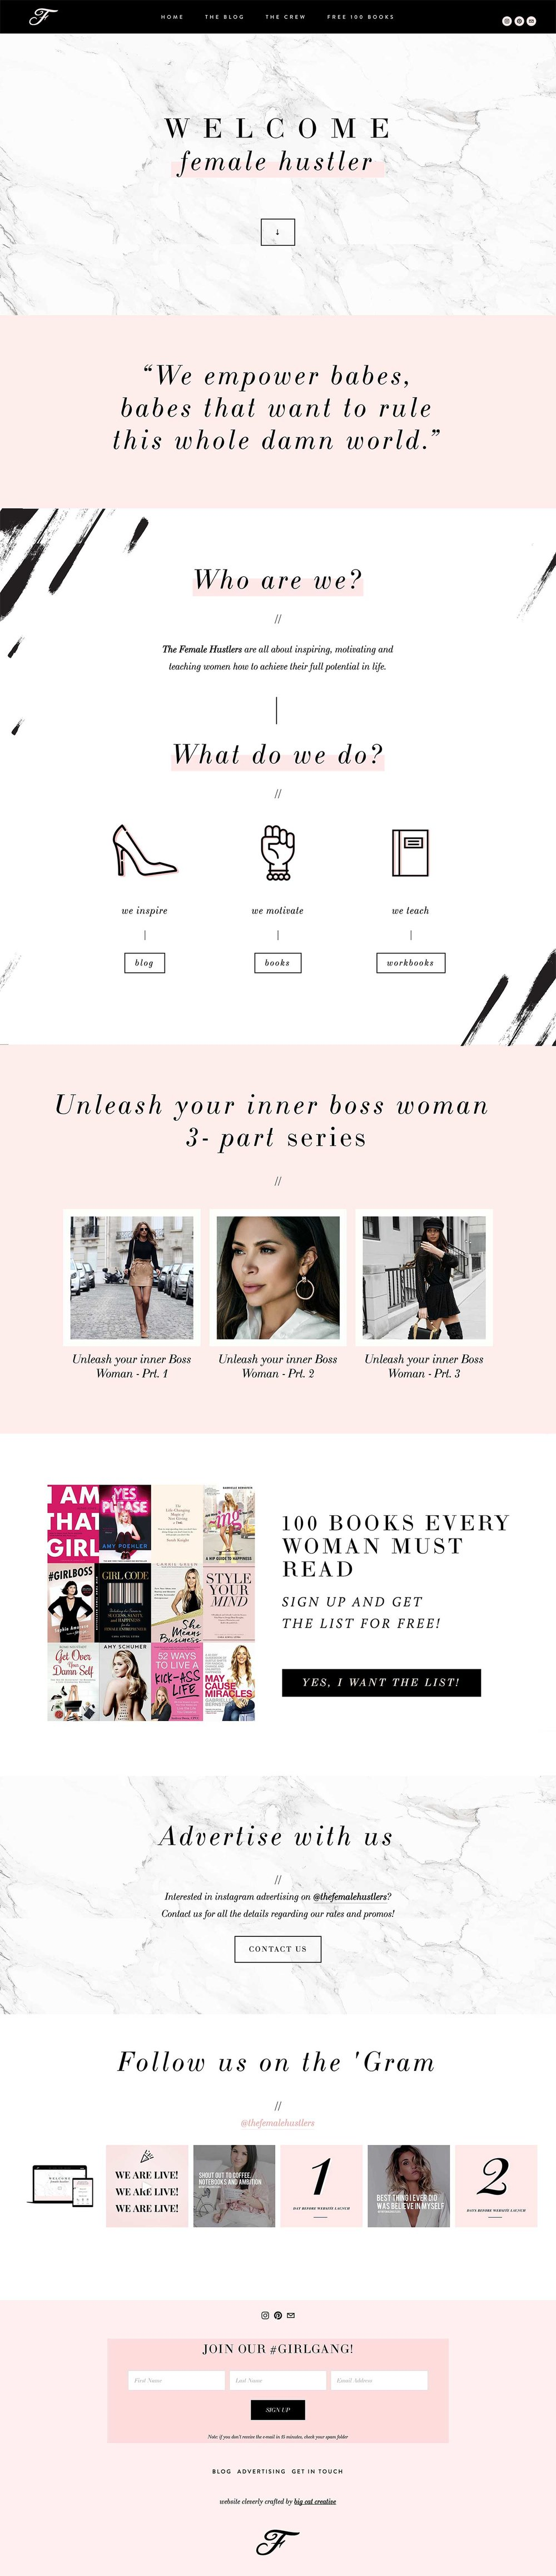 Squarespace Website Design: The Female Hustlers